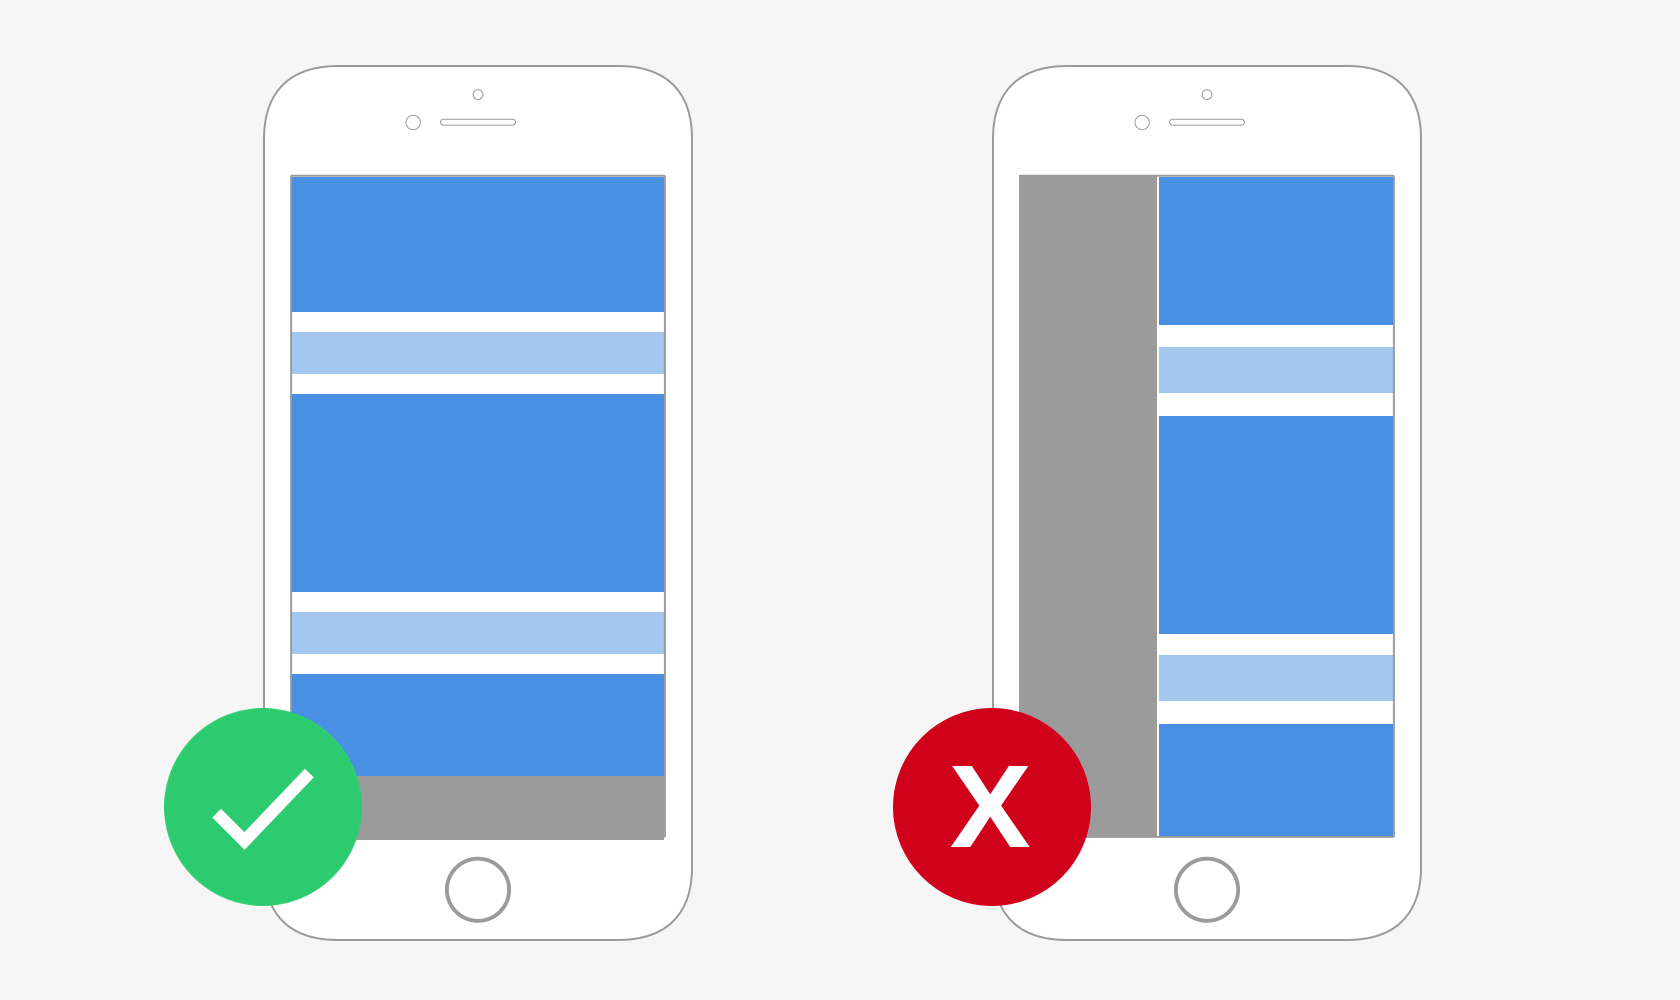 Responsive design plays a large part in mobile usability